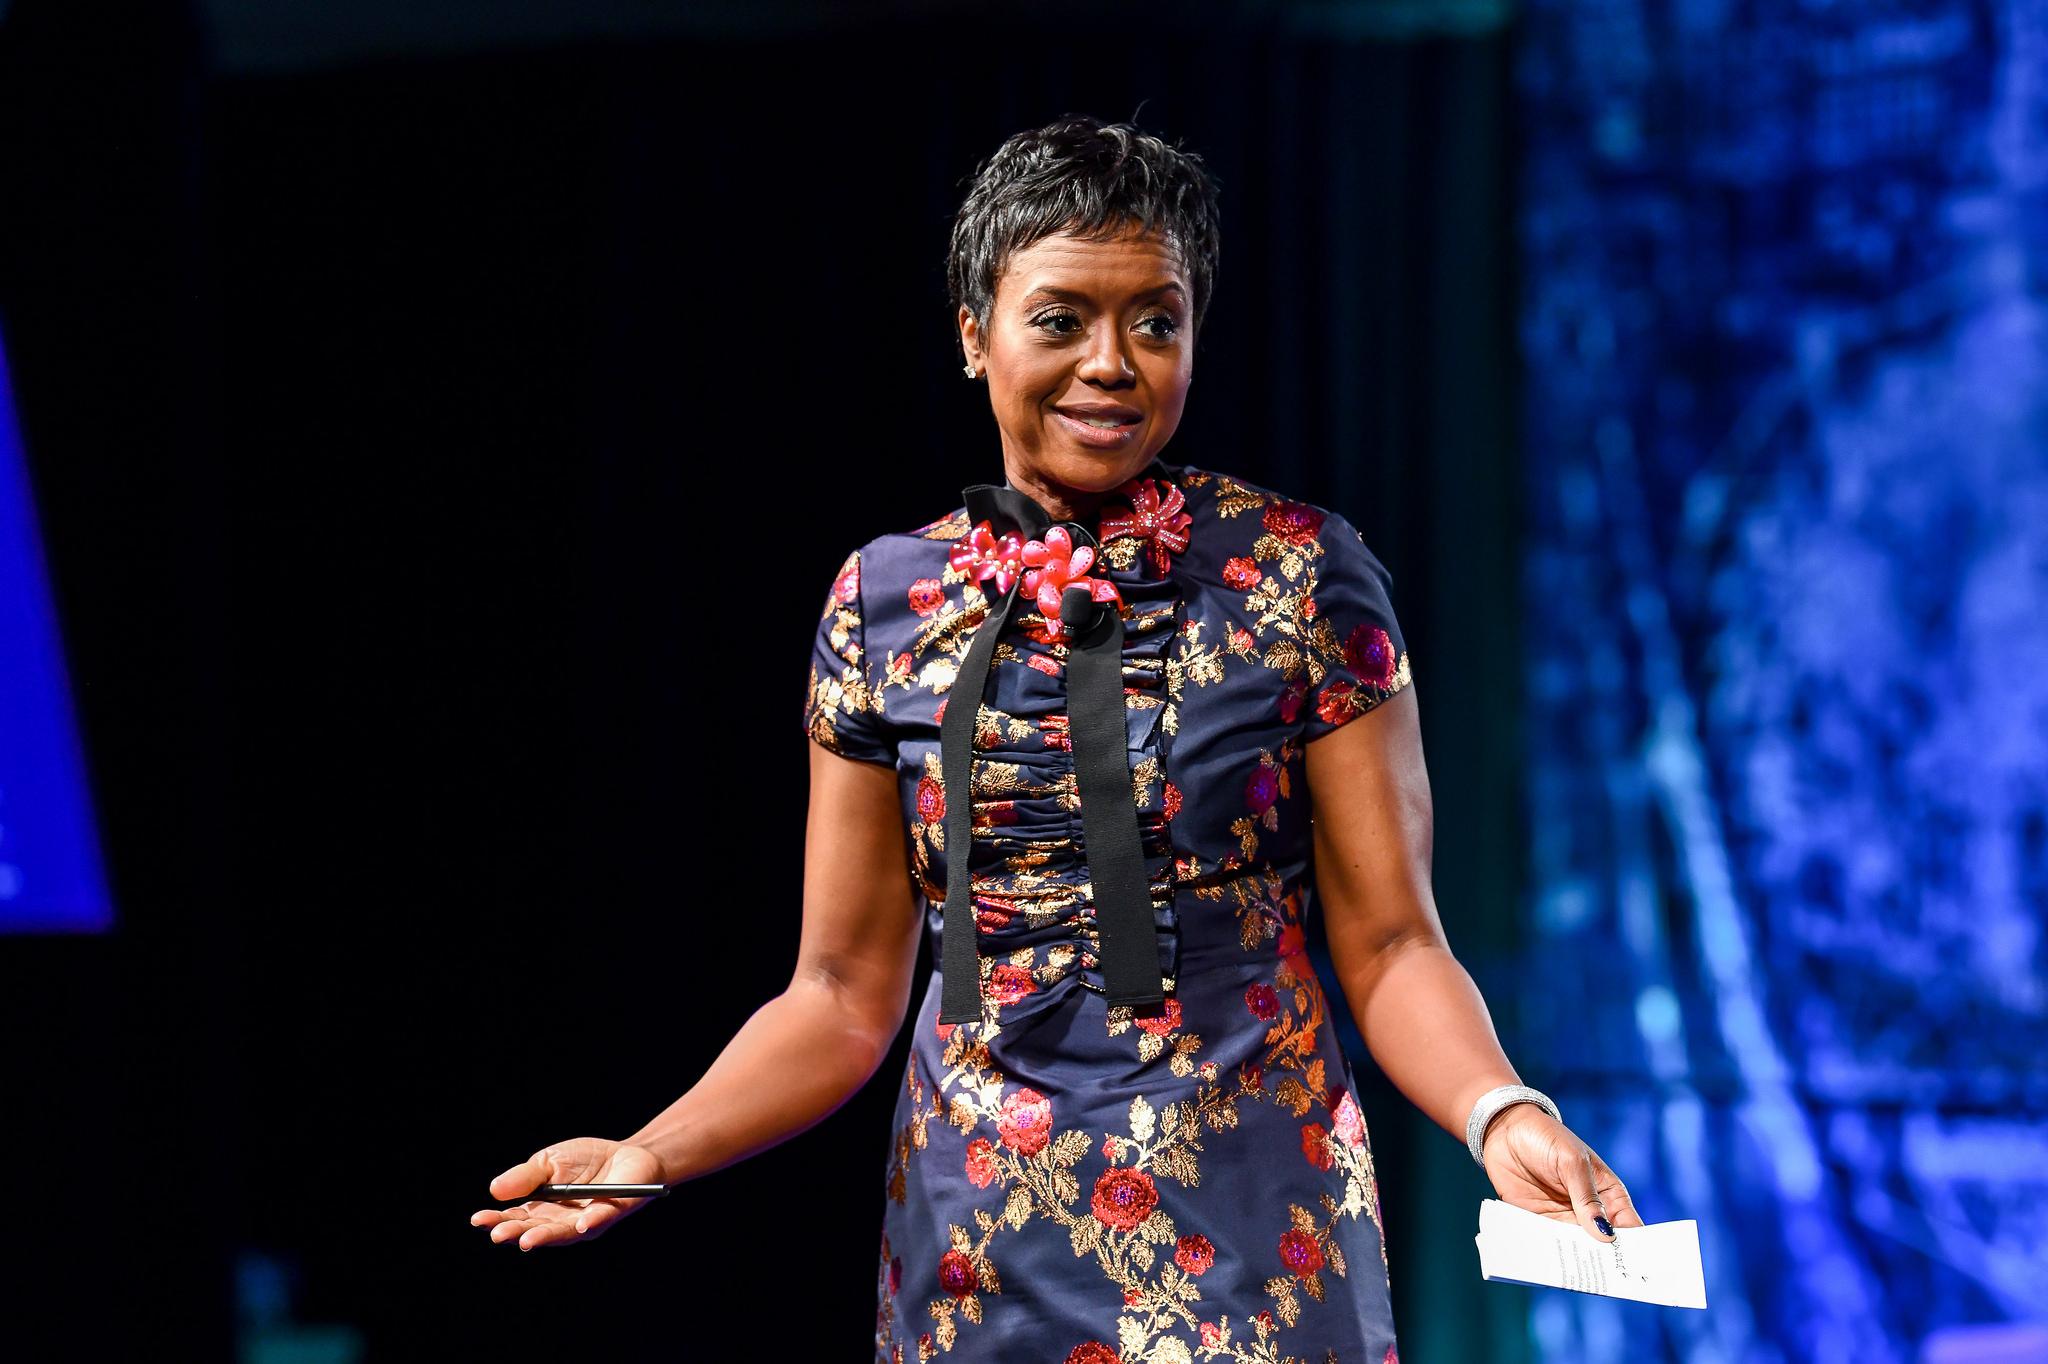 Mellody Hobson on stage at Fortune's Brainstorm Reinvent